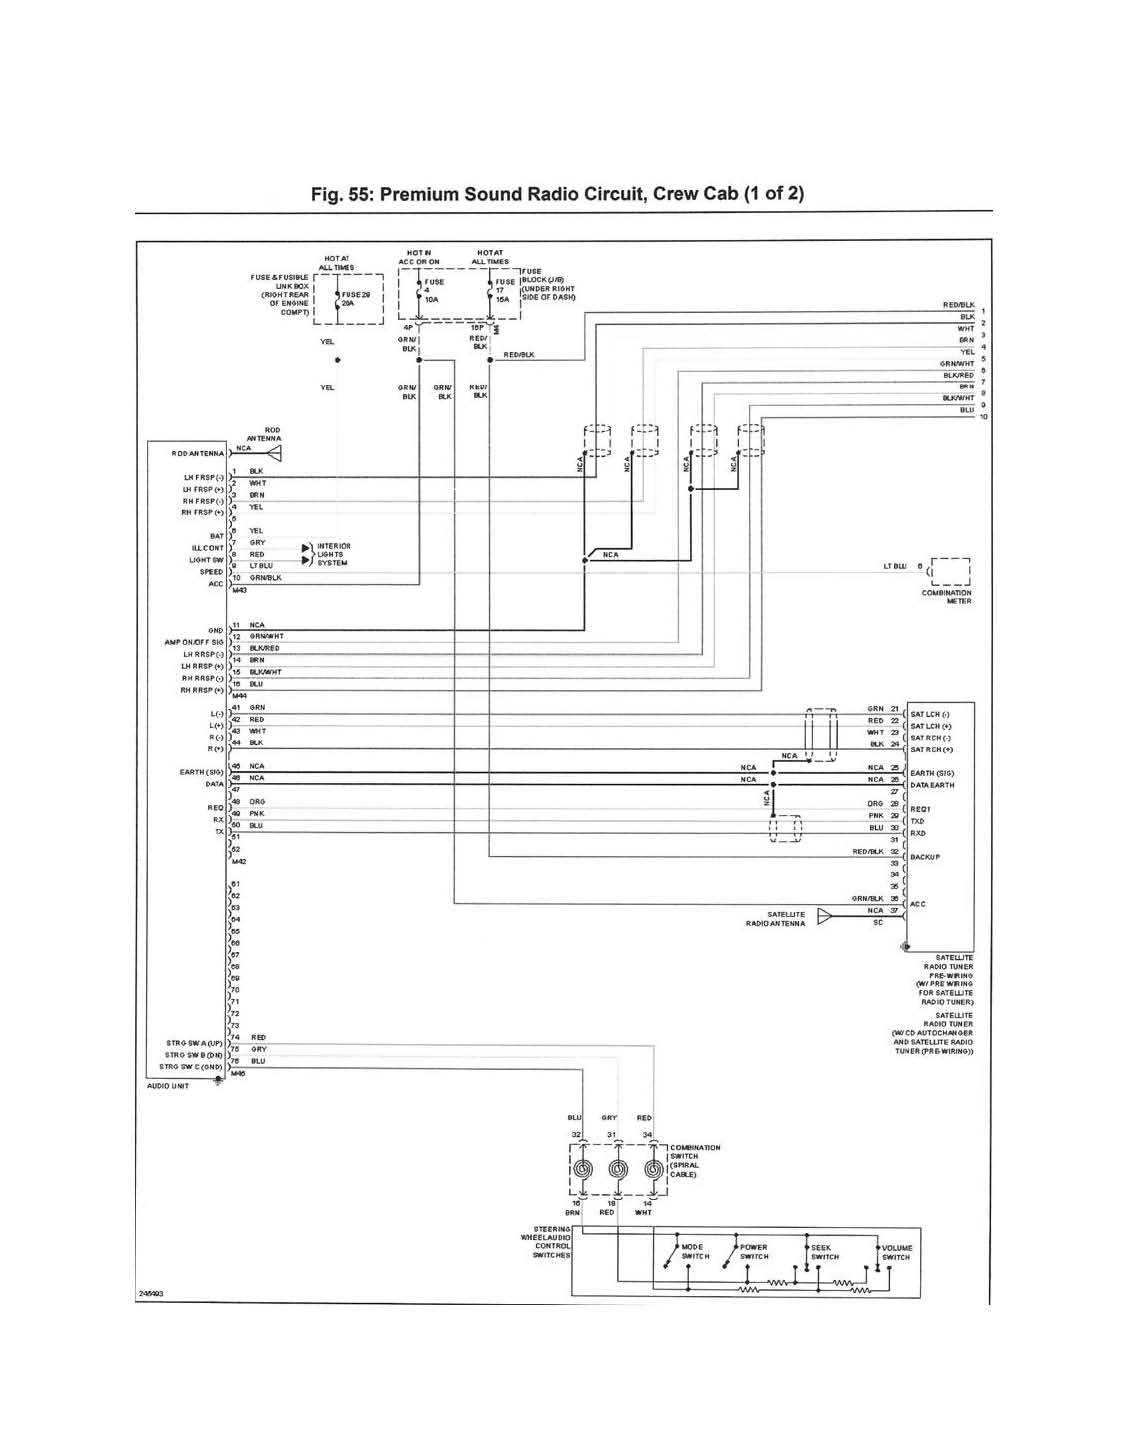 2011 Nissan Frontier Stereo Wiring Library 2005 Trailer Diagram 1999 Pathfinder Graphic